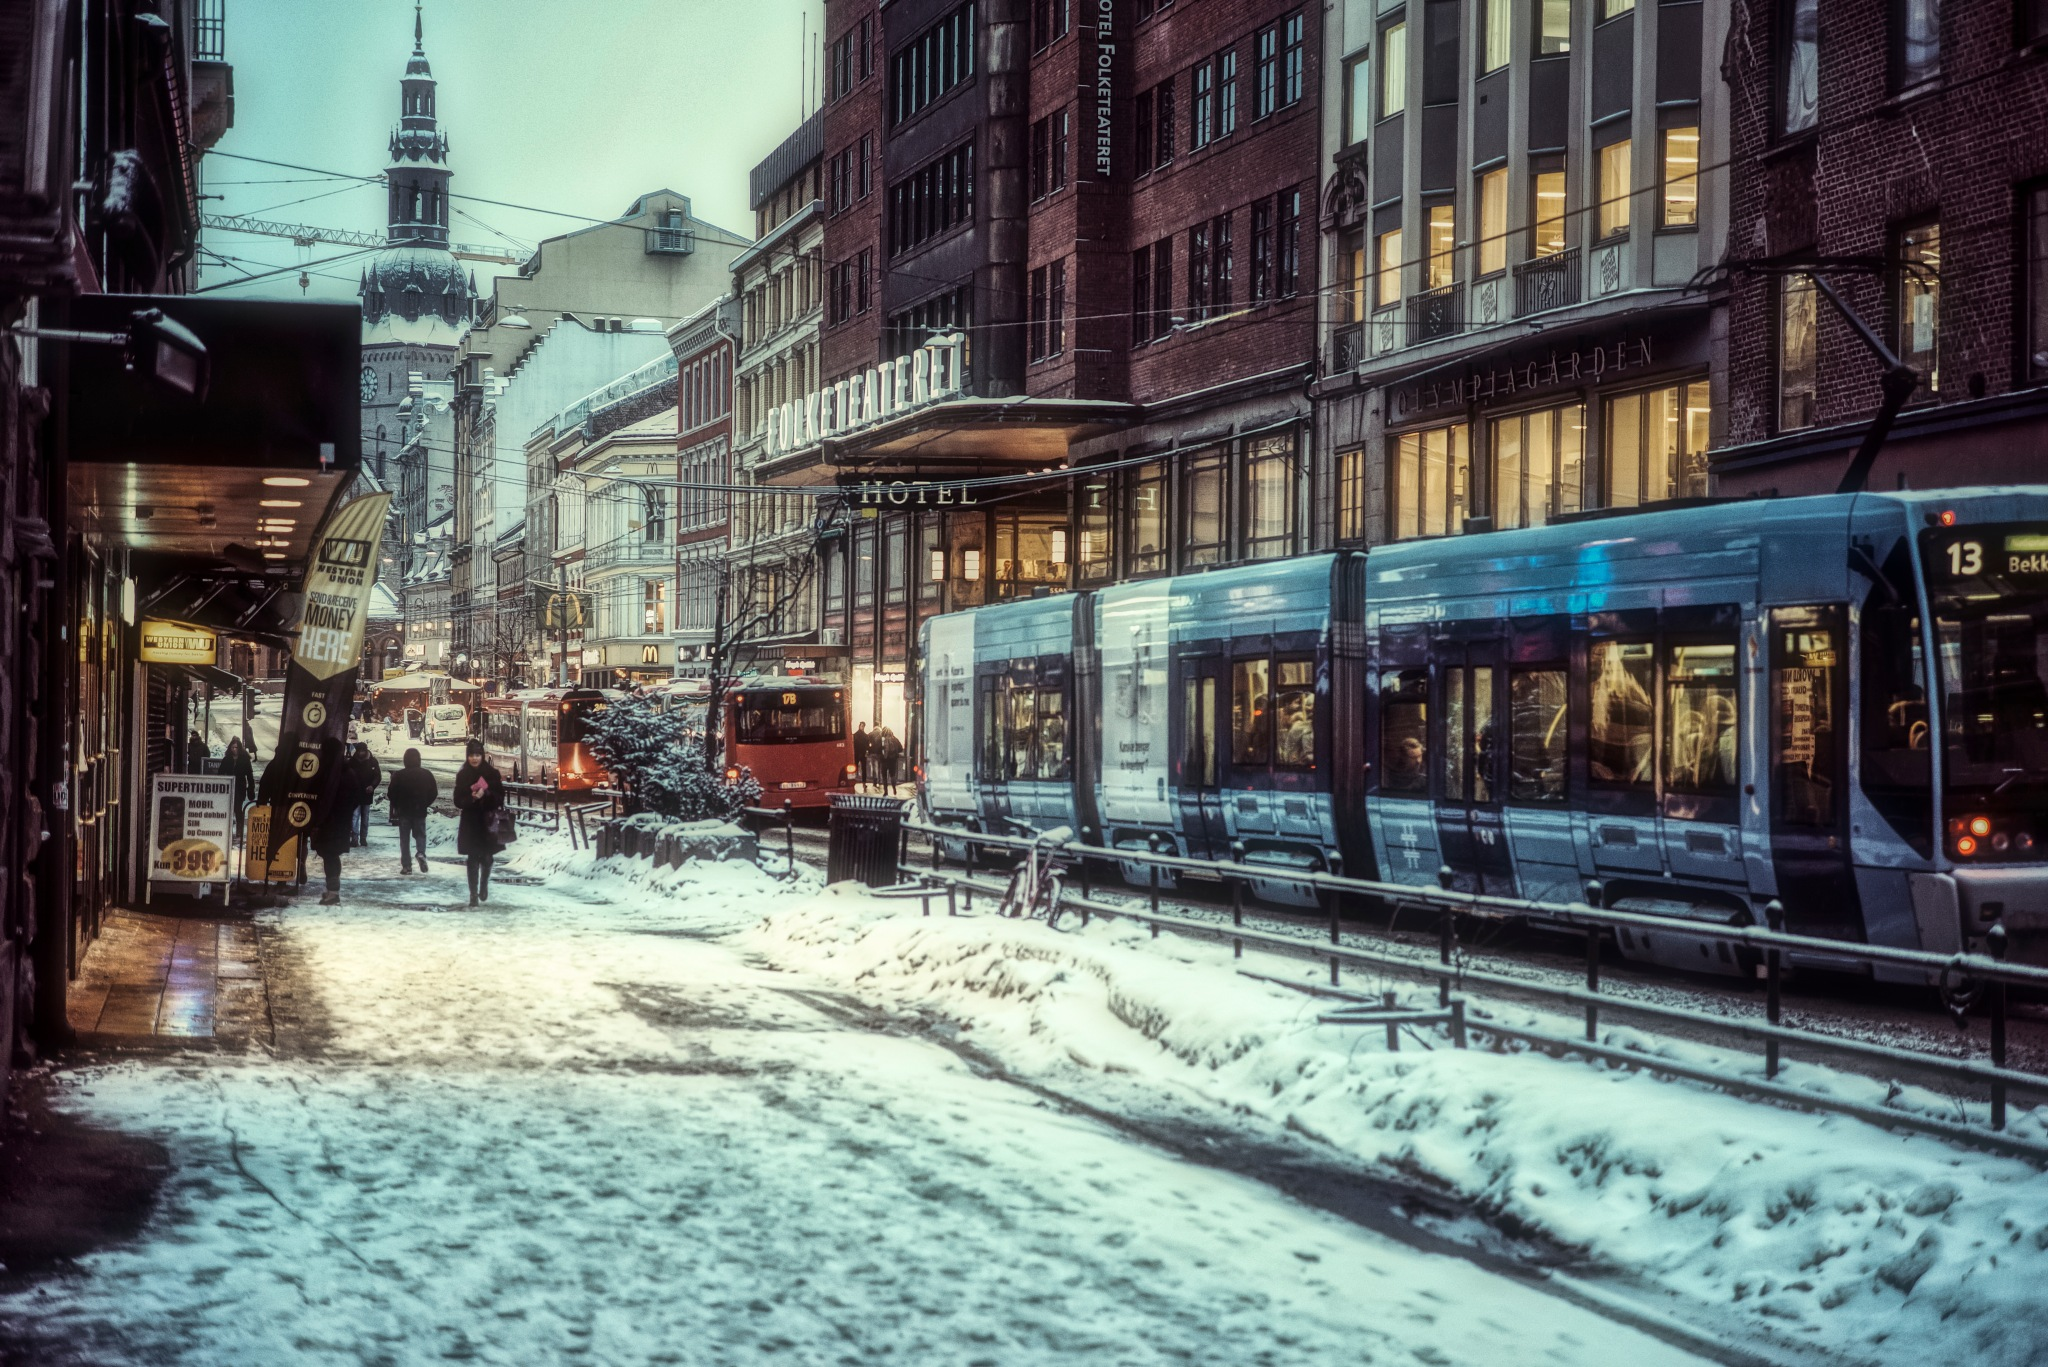 Winter is coming to The North-Oslo by Goran Jorganovich